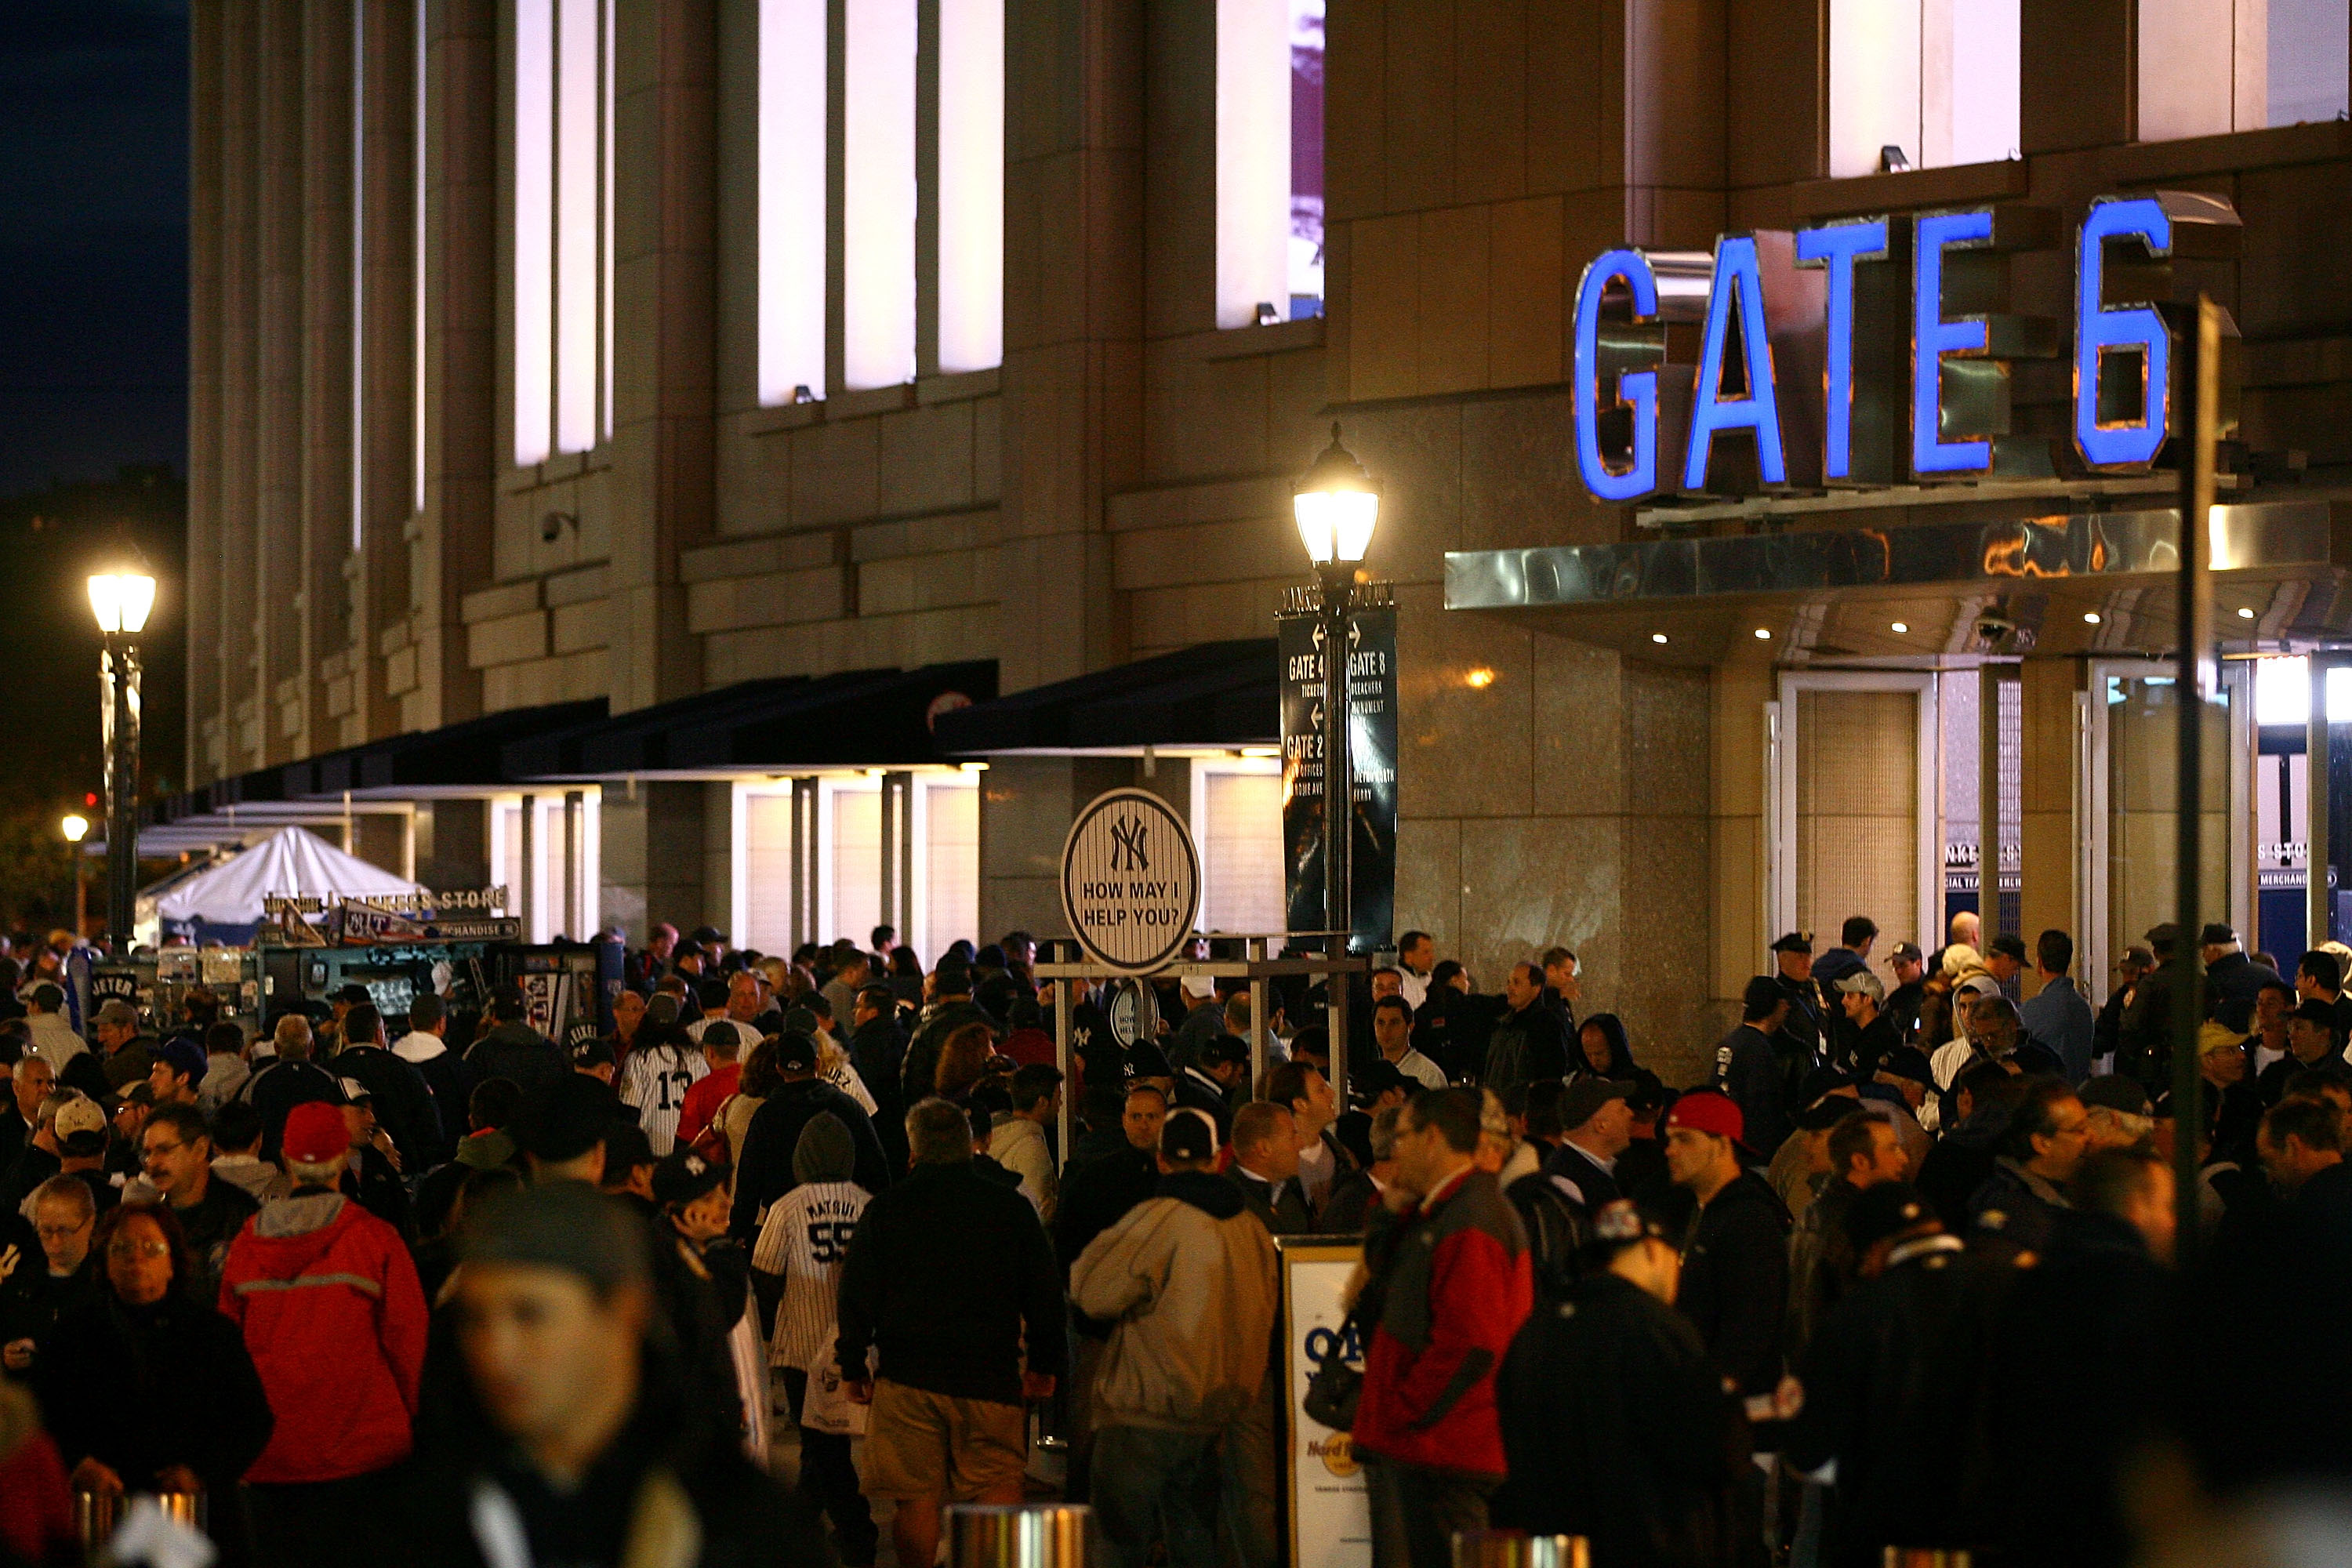 NEW YORK - OCTOBER 18:  Fans walks outside of Yankee Stadium before Game Three of the ALCS between the New York Yankees and the Texas Rangers during the 2010 MLB Playoffs at Yankee Stadium on October 18, 2010 in New York, New York.  (Photo by Andrew Burto